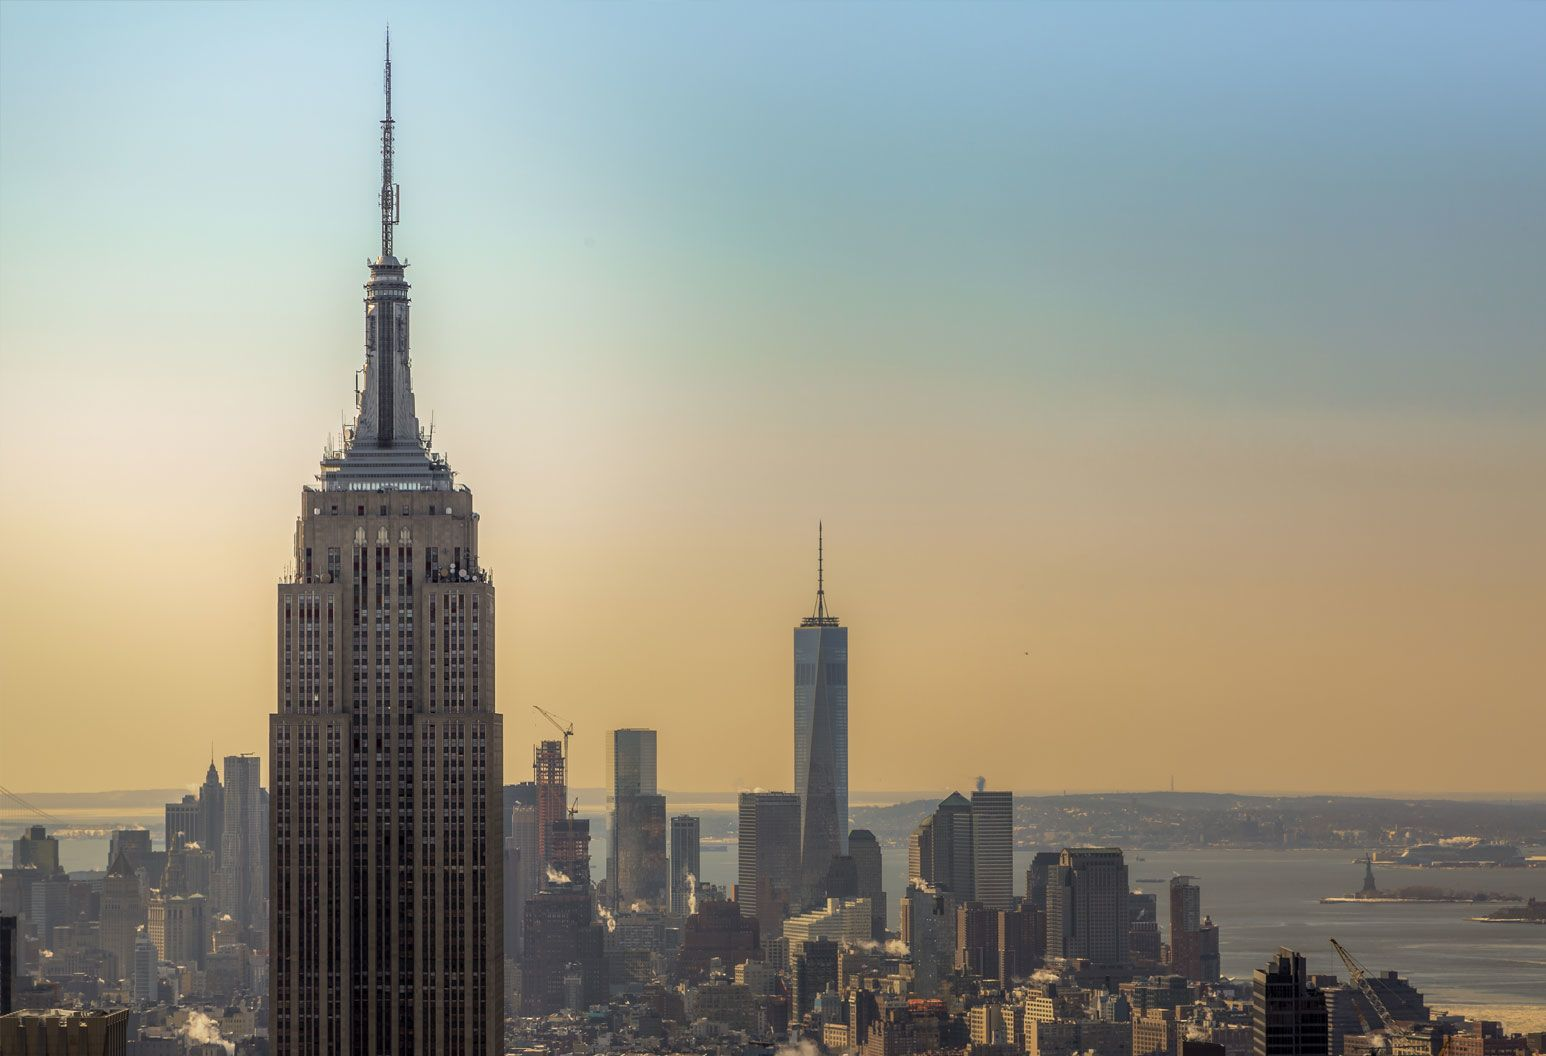 Empire state building with the New York City skyline behind it, during sunrise